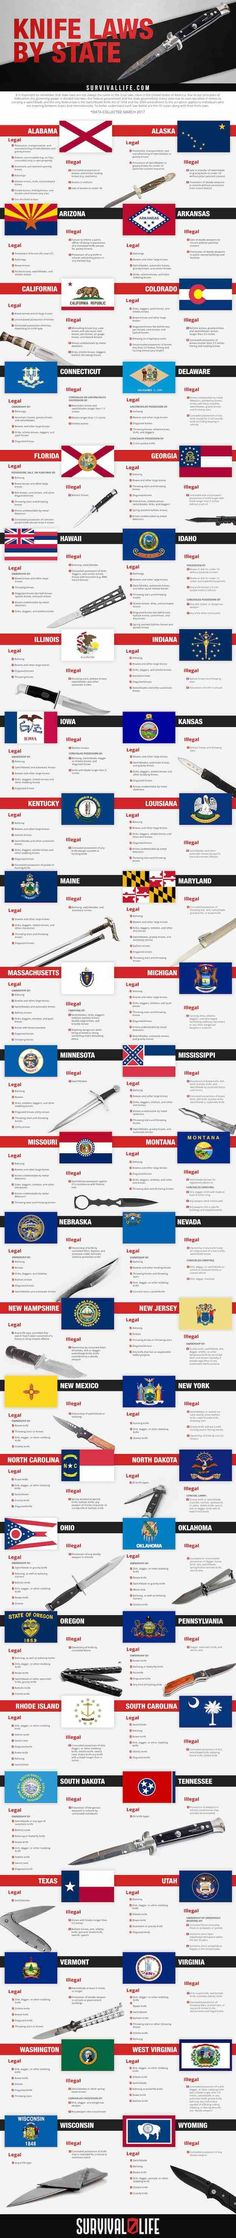 Find out if switchblades are legal in your state. We've listed knife laws by state for switchblades, butterfly knives & other knives for all 50 states.